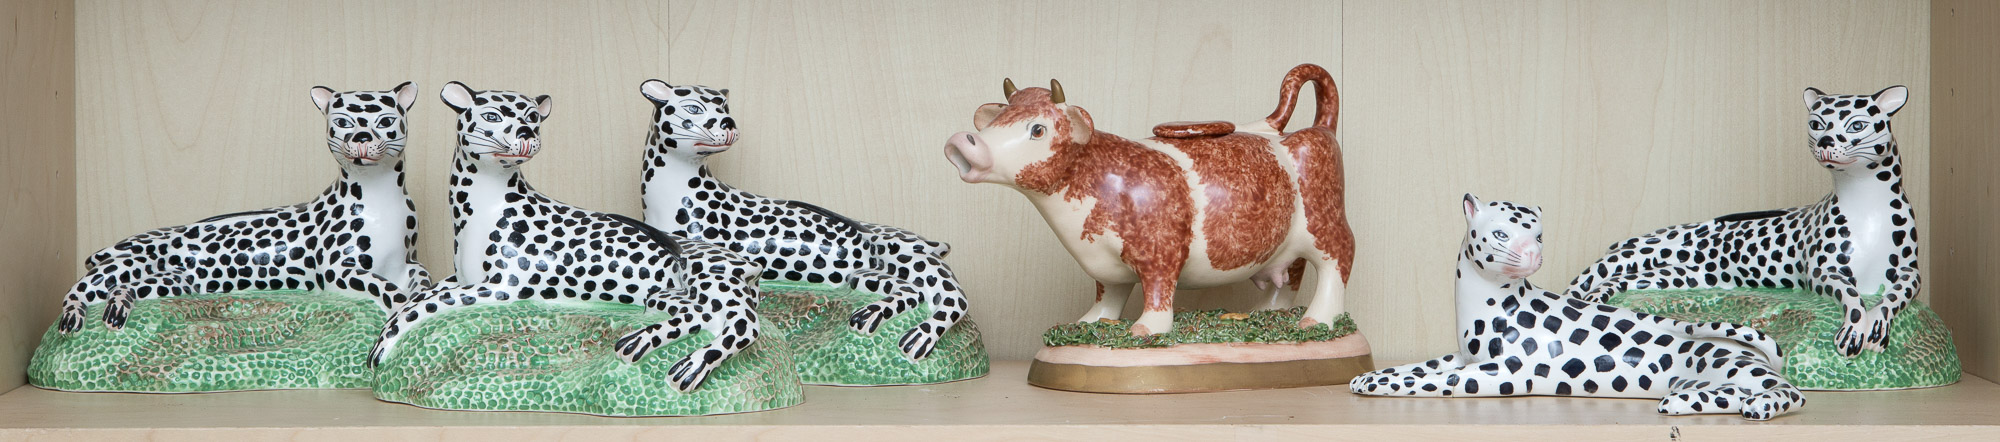 Lot image - Group of Five Pottery Leopard Figurines; Together with a Pottery Cow Creamer